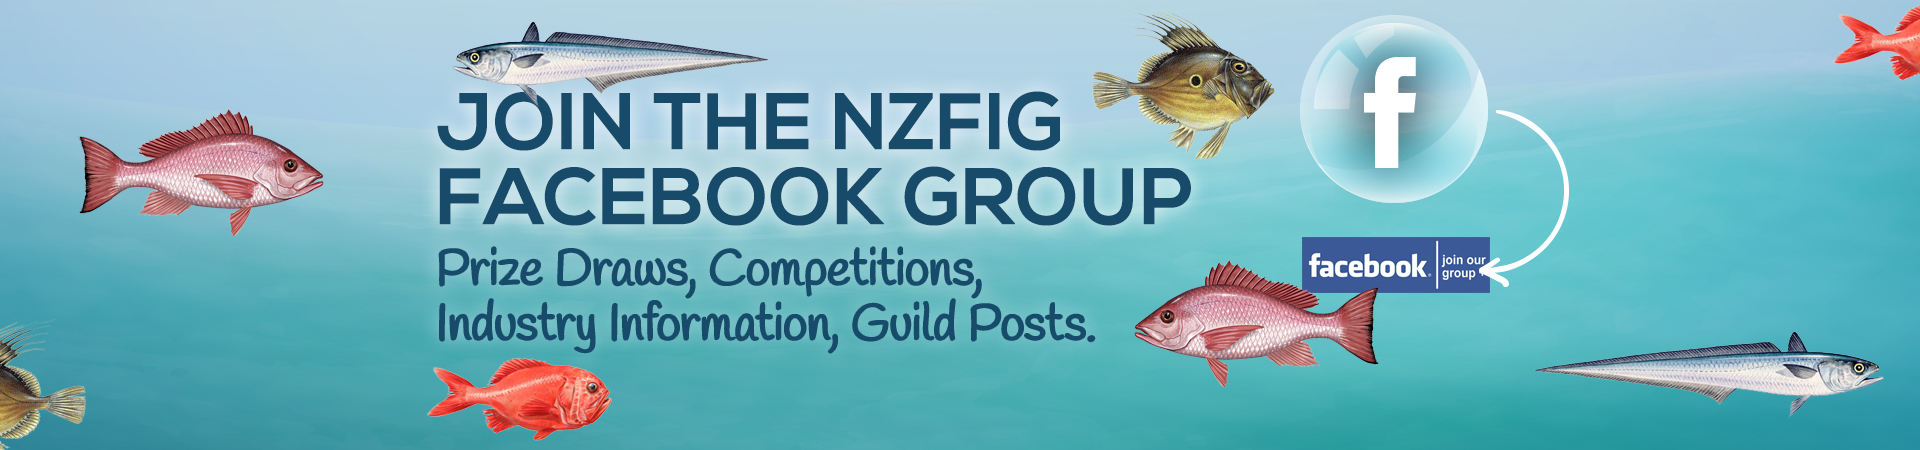 NZFIG_J001011_Website_Banner_v4